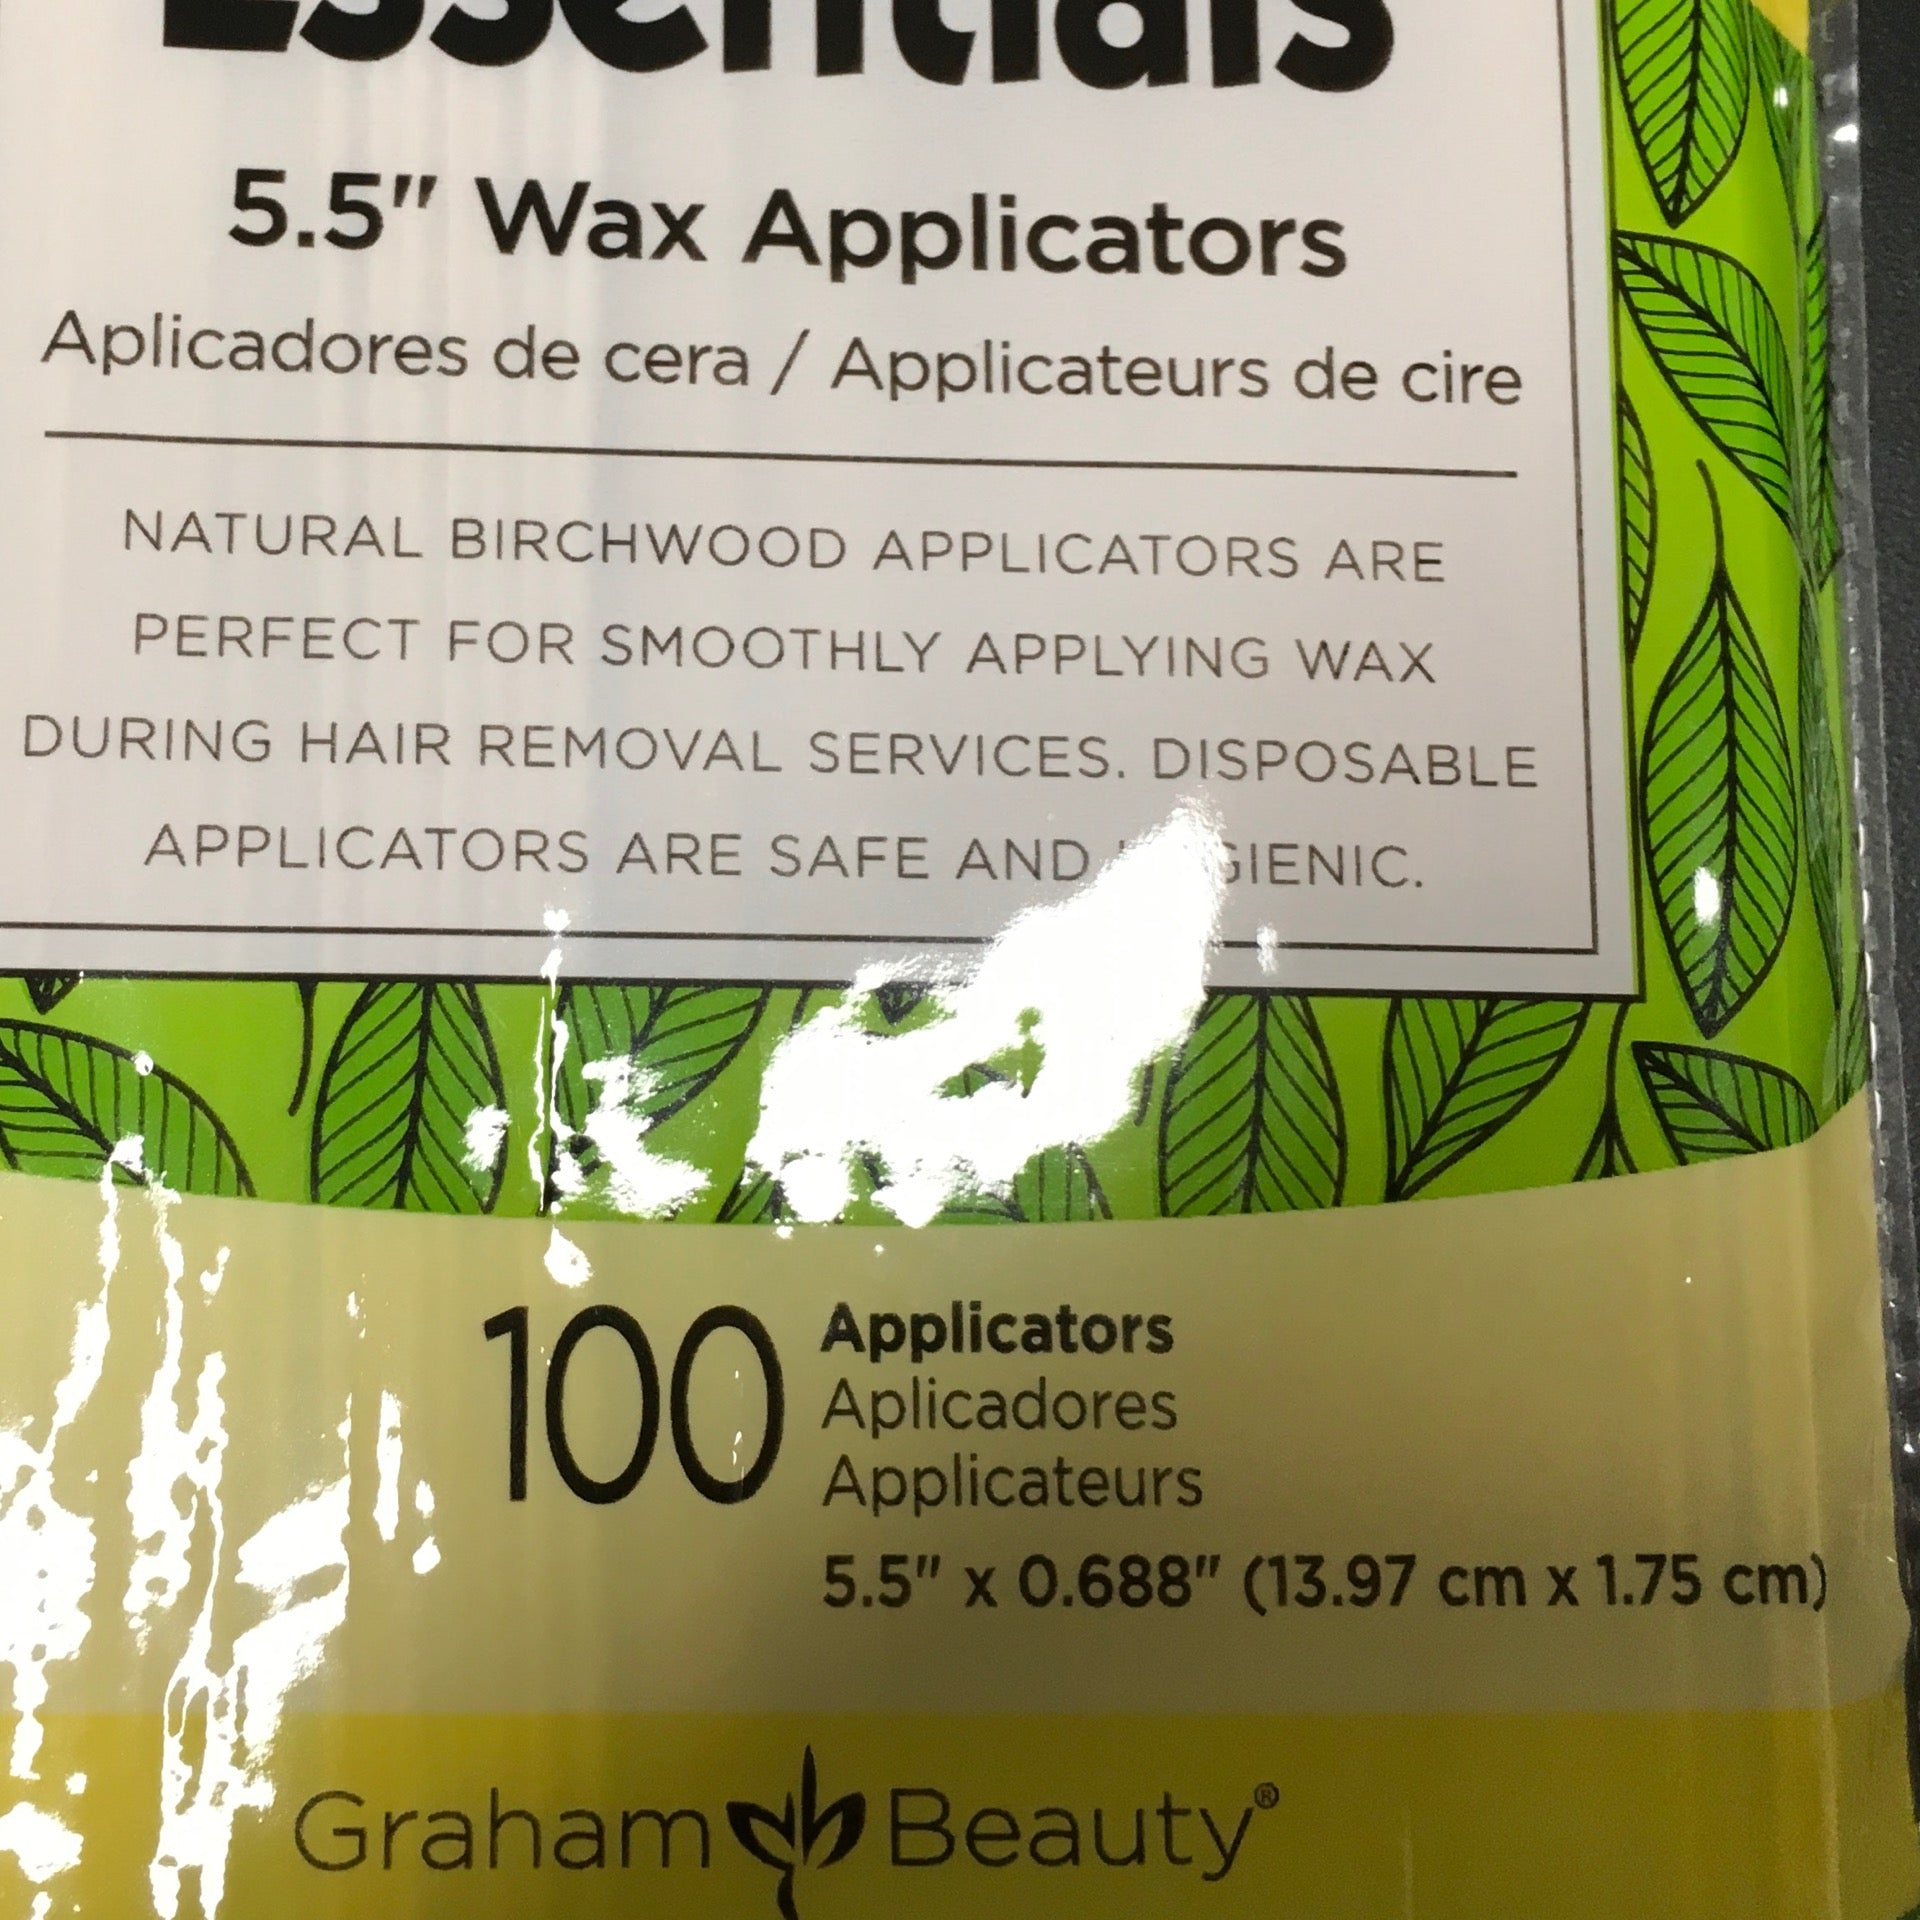 Birchwood Wax Applicators 5.5